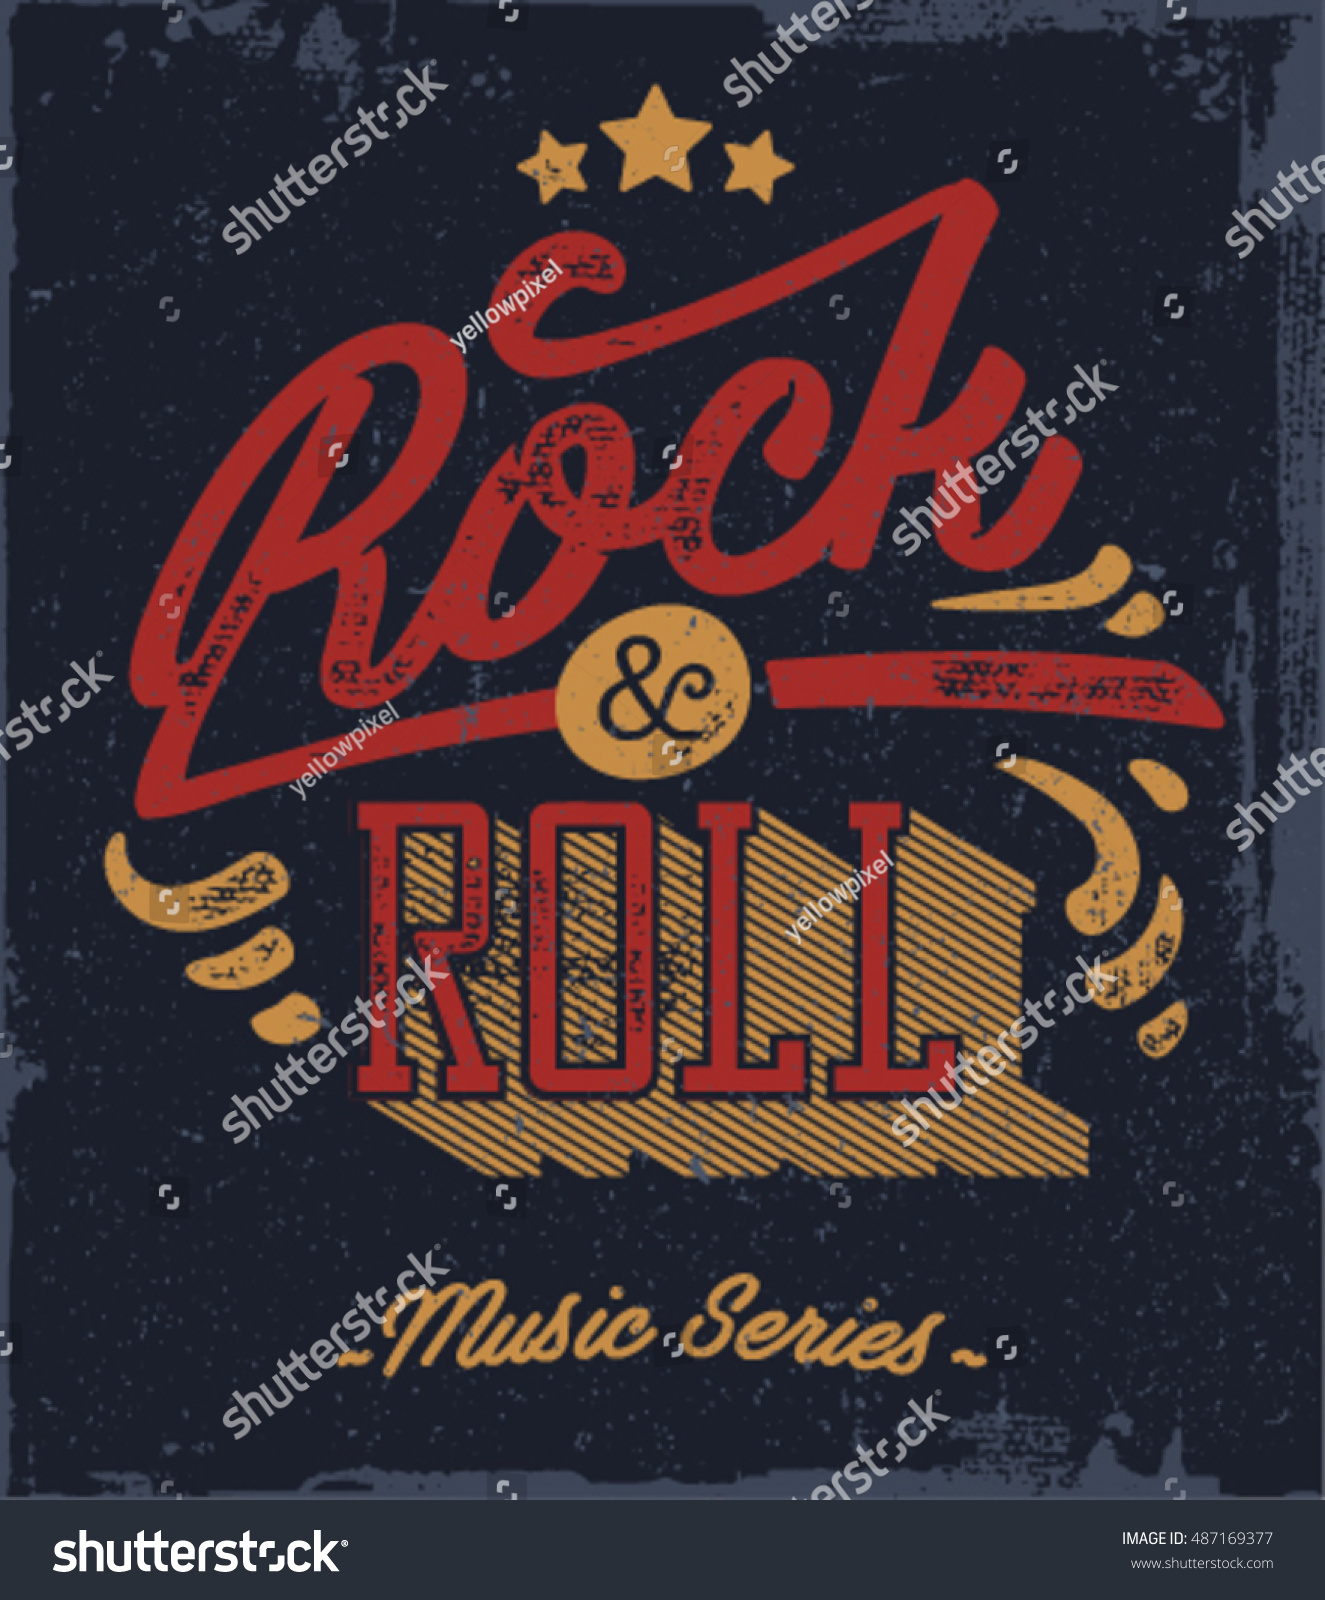 T shirt poster design - Rock And Roll Typography Vector T Shirt Or Poster Design Tee Template